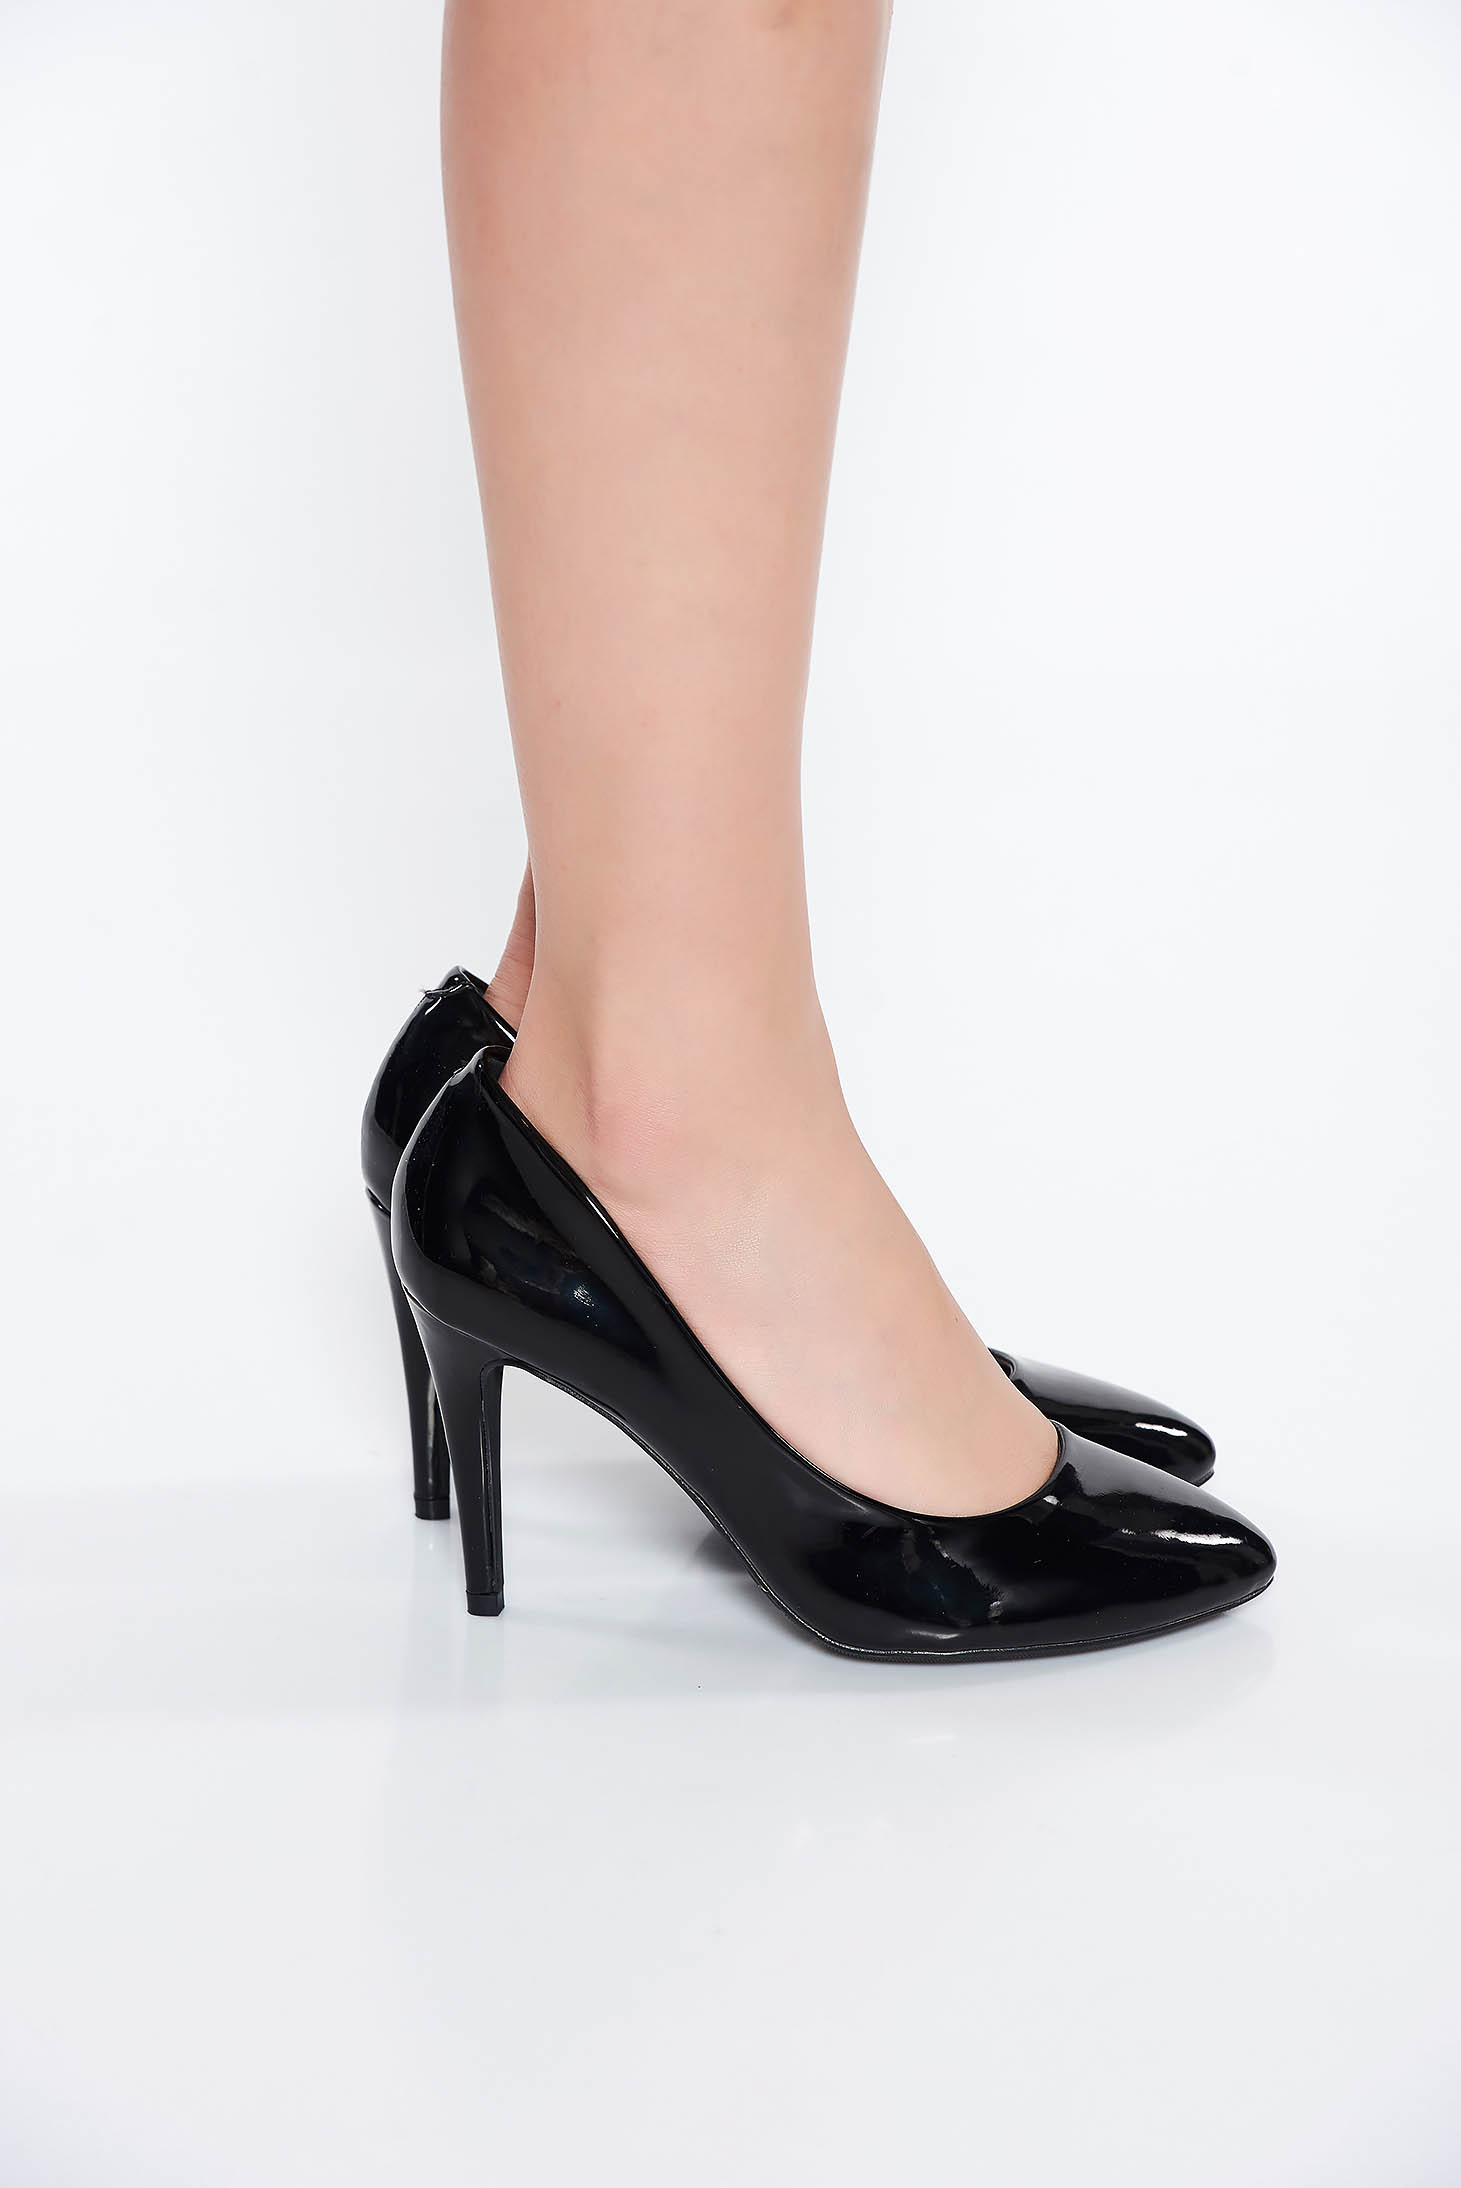 Black office shoes from ecological varnished leather slightly round toe tip